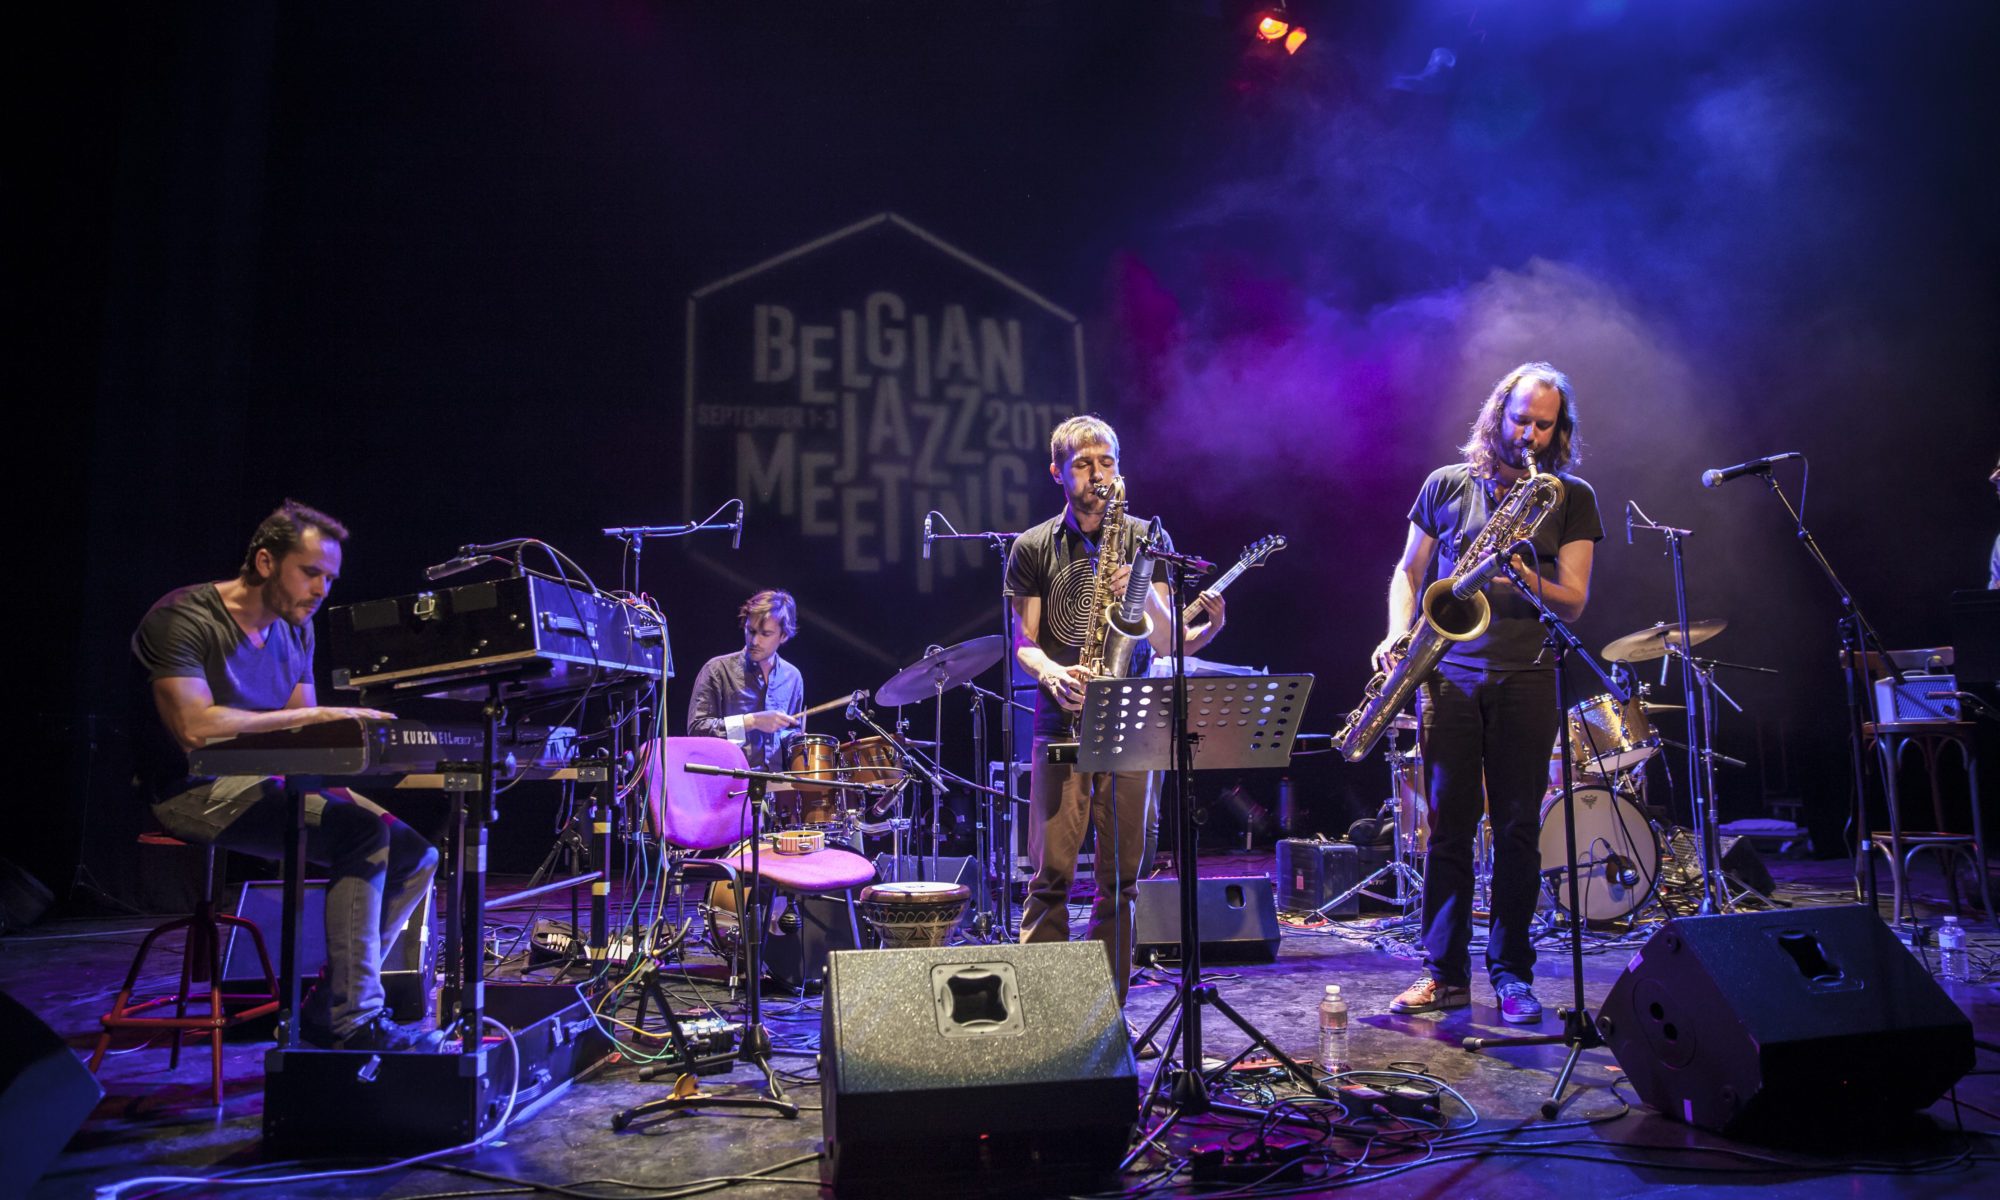 Belgian Jazz Meeting 2021